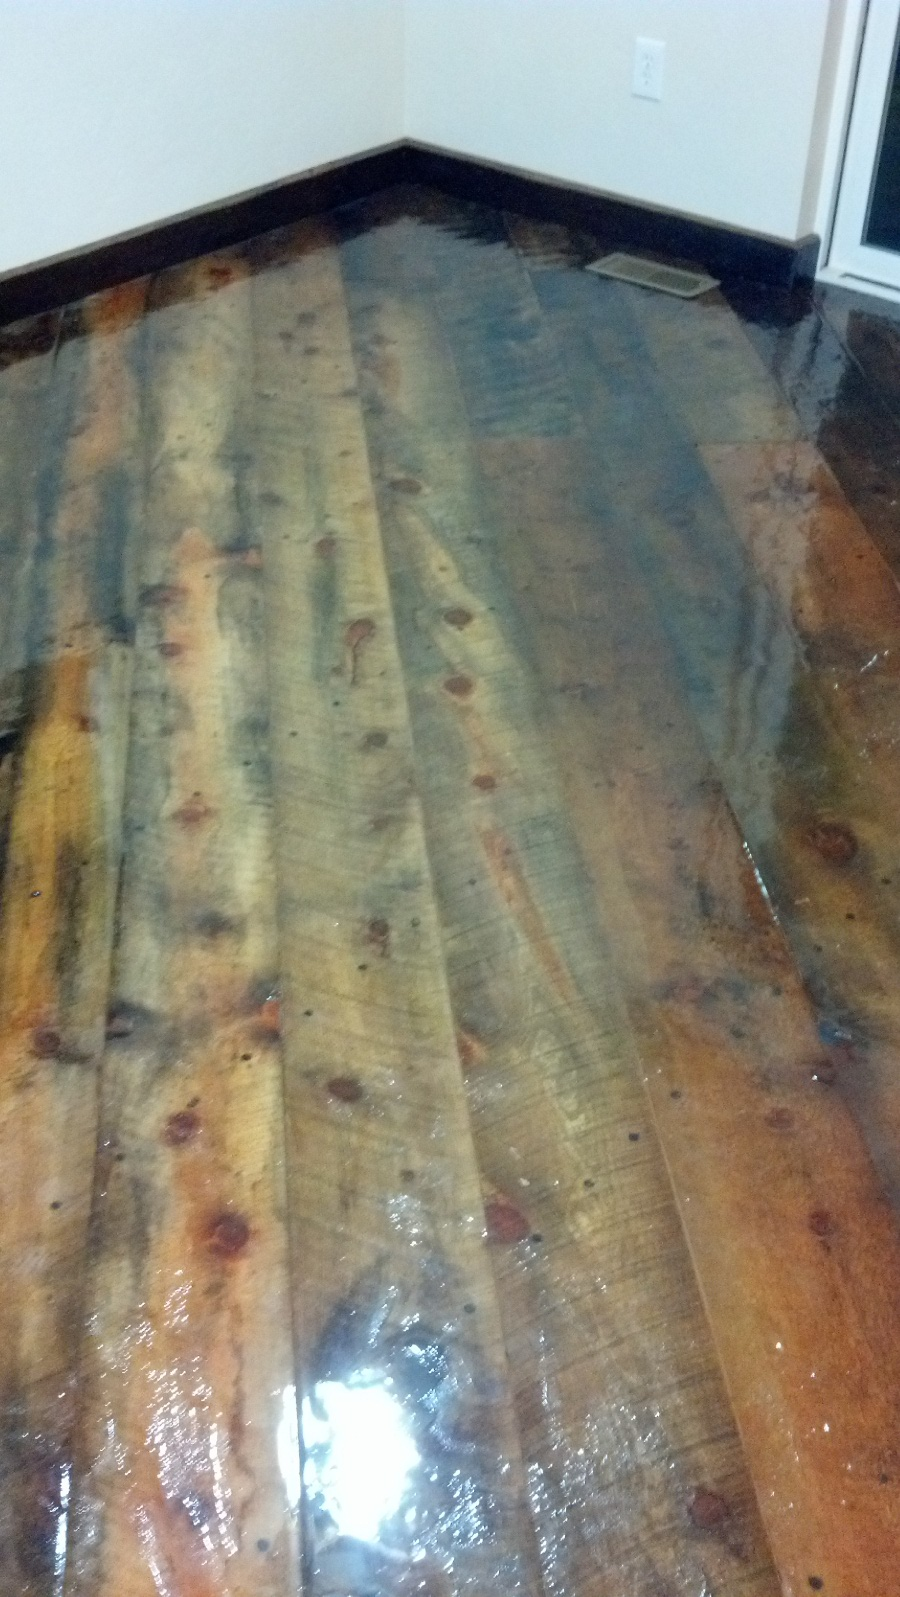 Wooden barn board floor After the application of Epoxy.com product #15